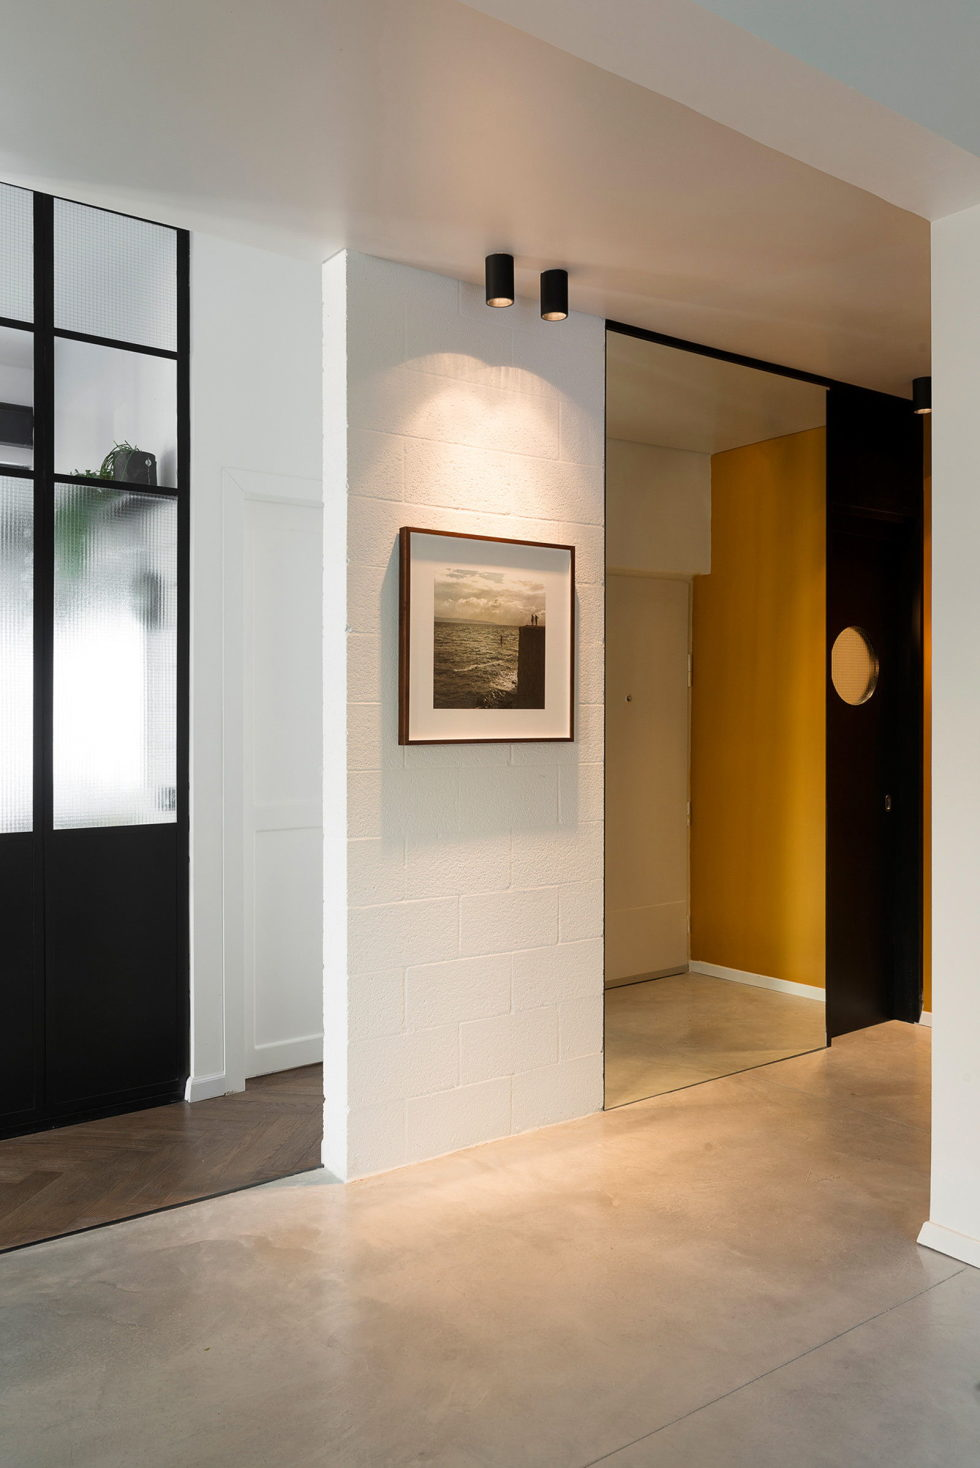 Renovation Of The Apartment In Israel From Raanans Stern's Studio 10